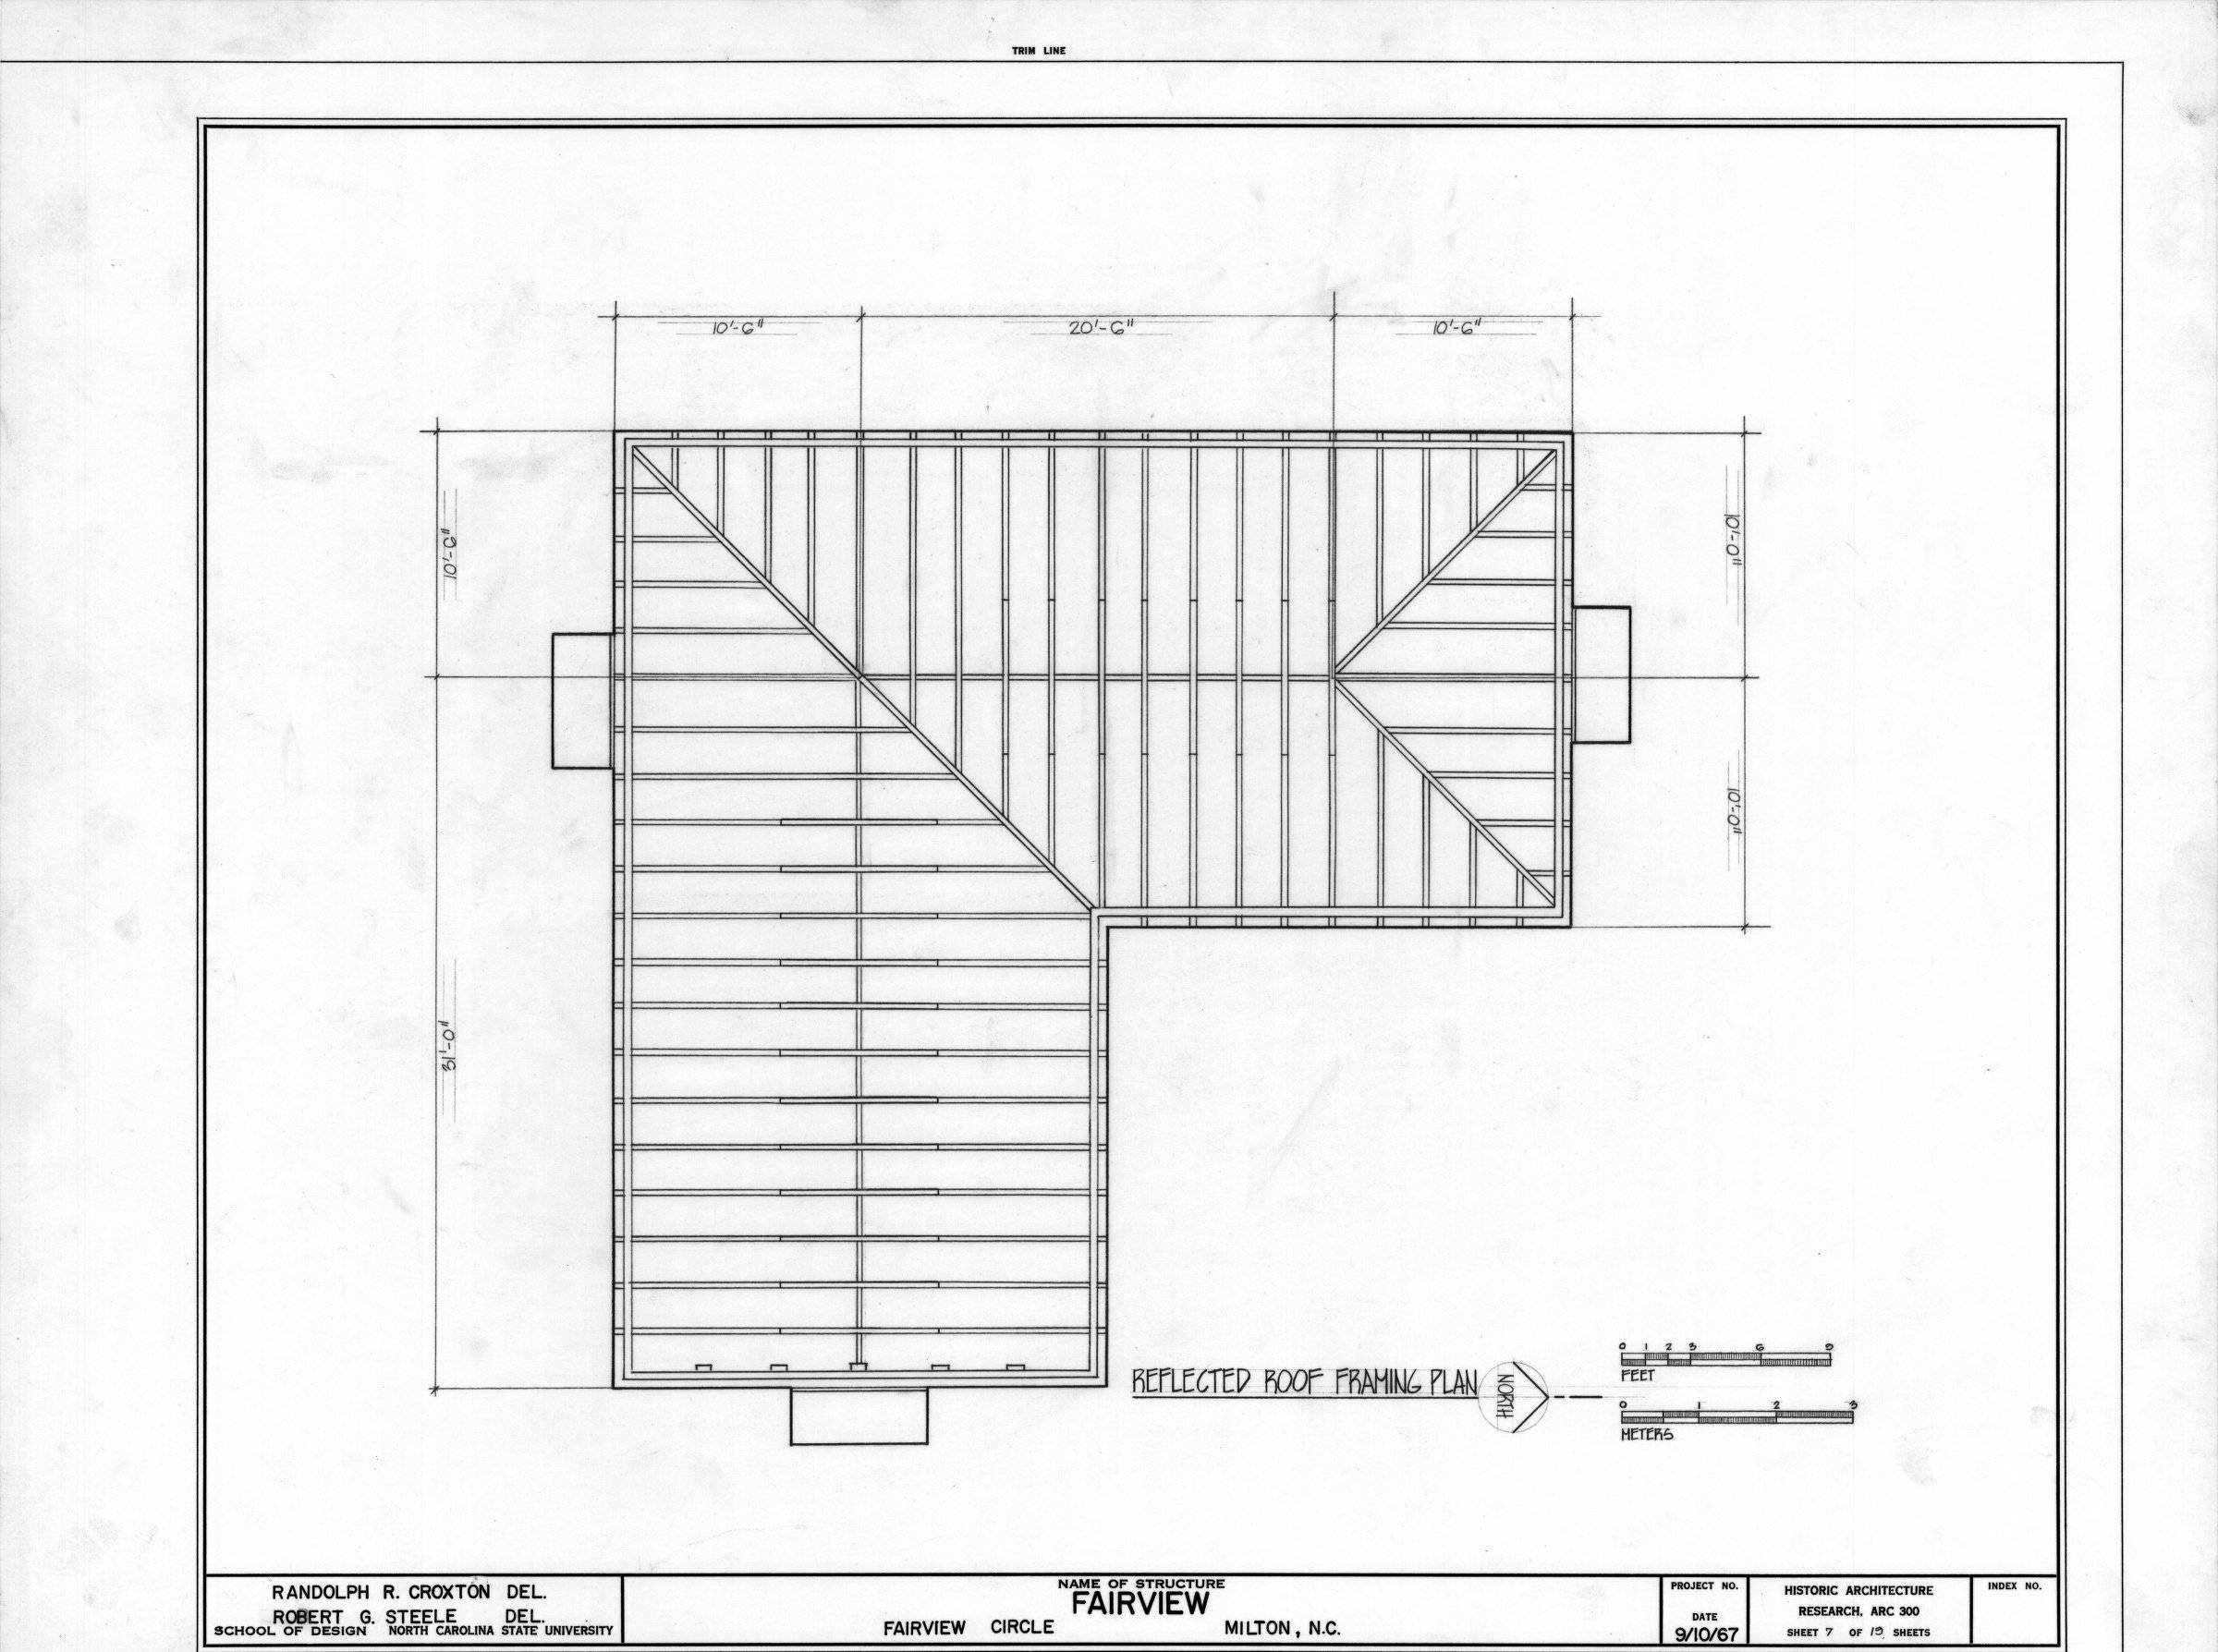 a frame roof plans luxury floor plans for new homes roof framing plan asa thomas house